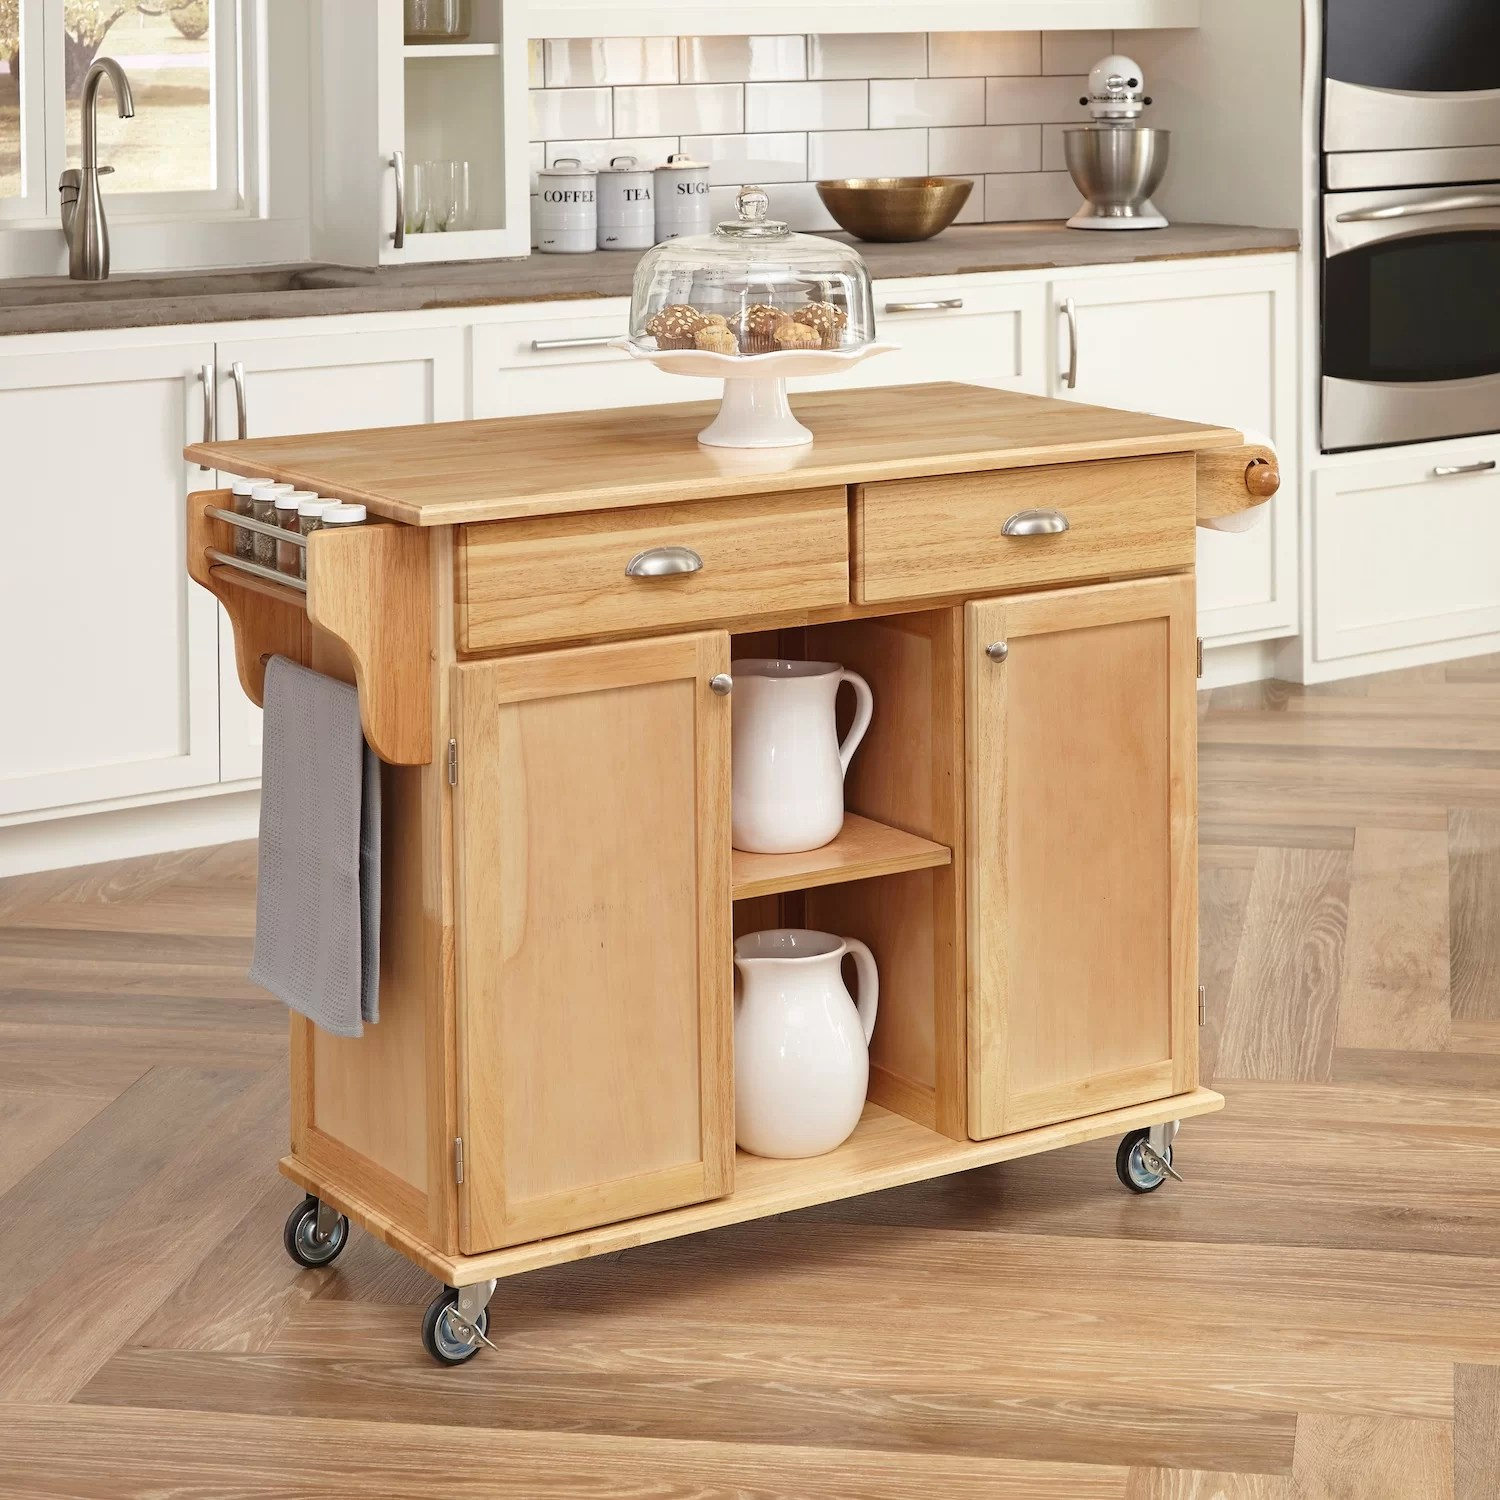 August Grove Lili Kitchen Island with Wood Top  Reviews